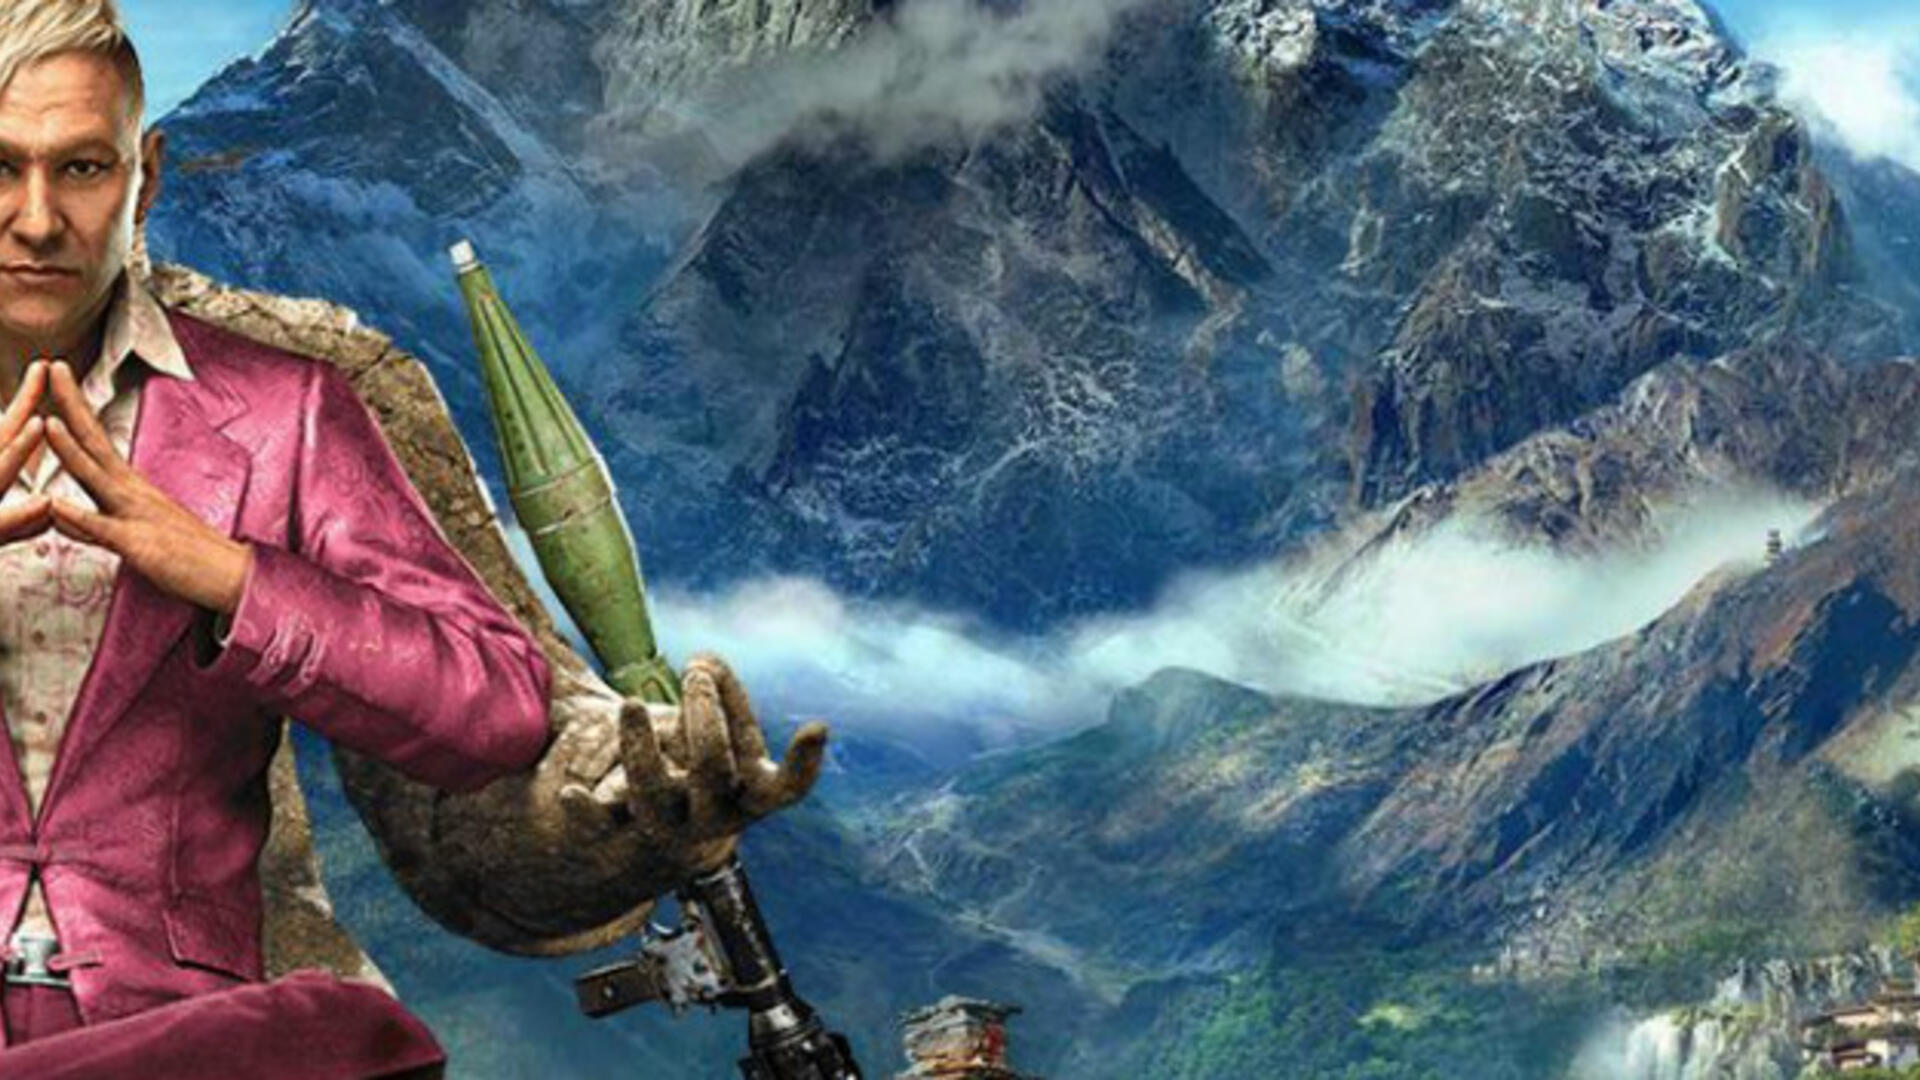 Far Cry 4 Reveal Controversy: Marketing, Mature Themes, and the Trouble with Sequels